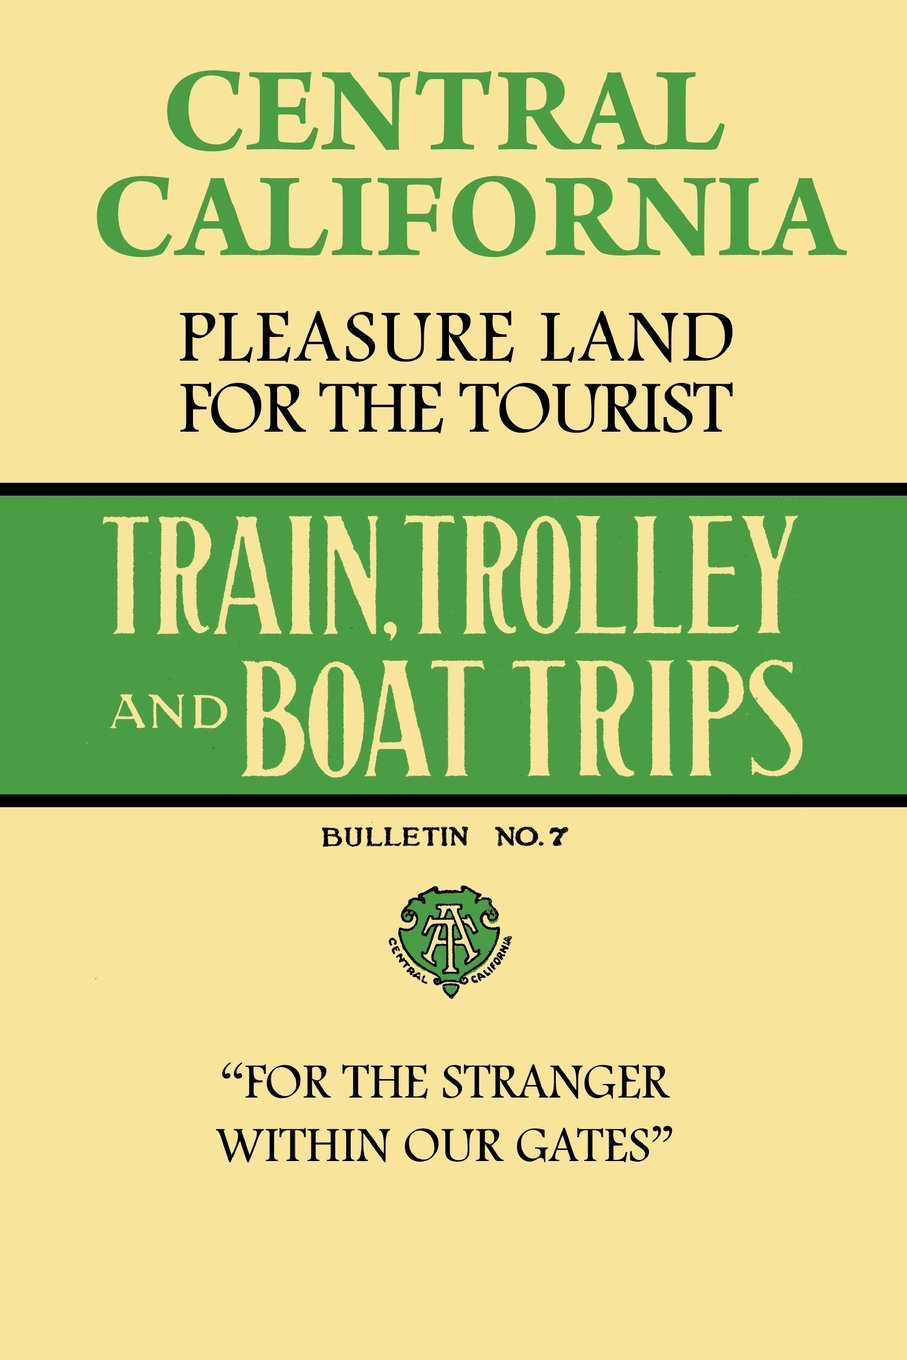 Read Online Central California Pleasure Land For The Tourist - Train, Trolley And Boat Trips PDF